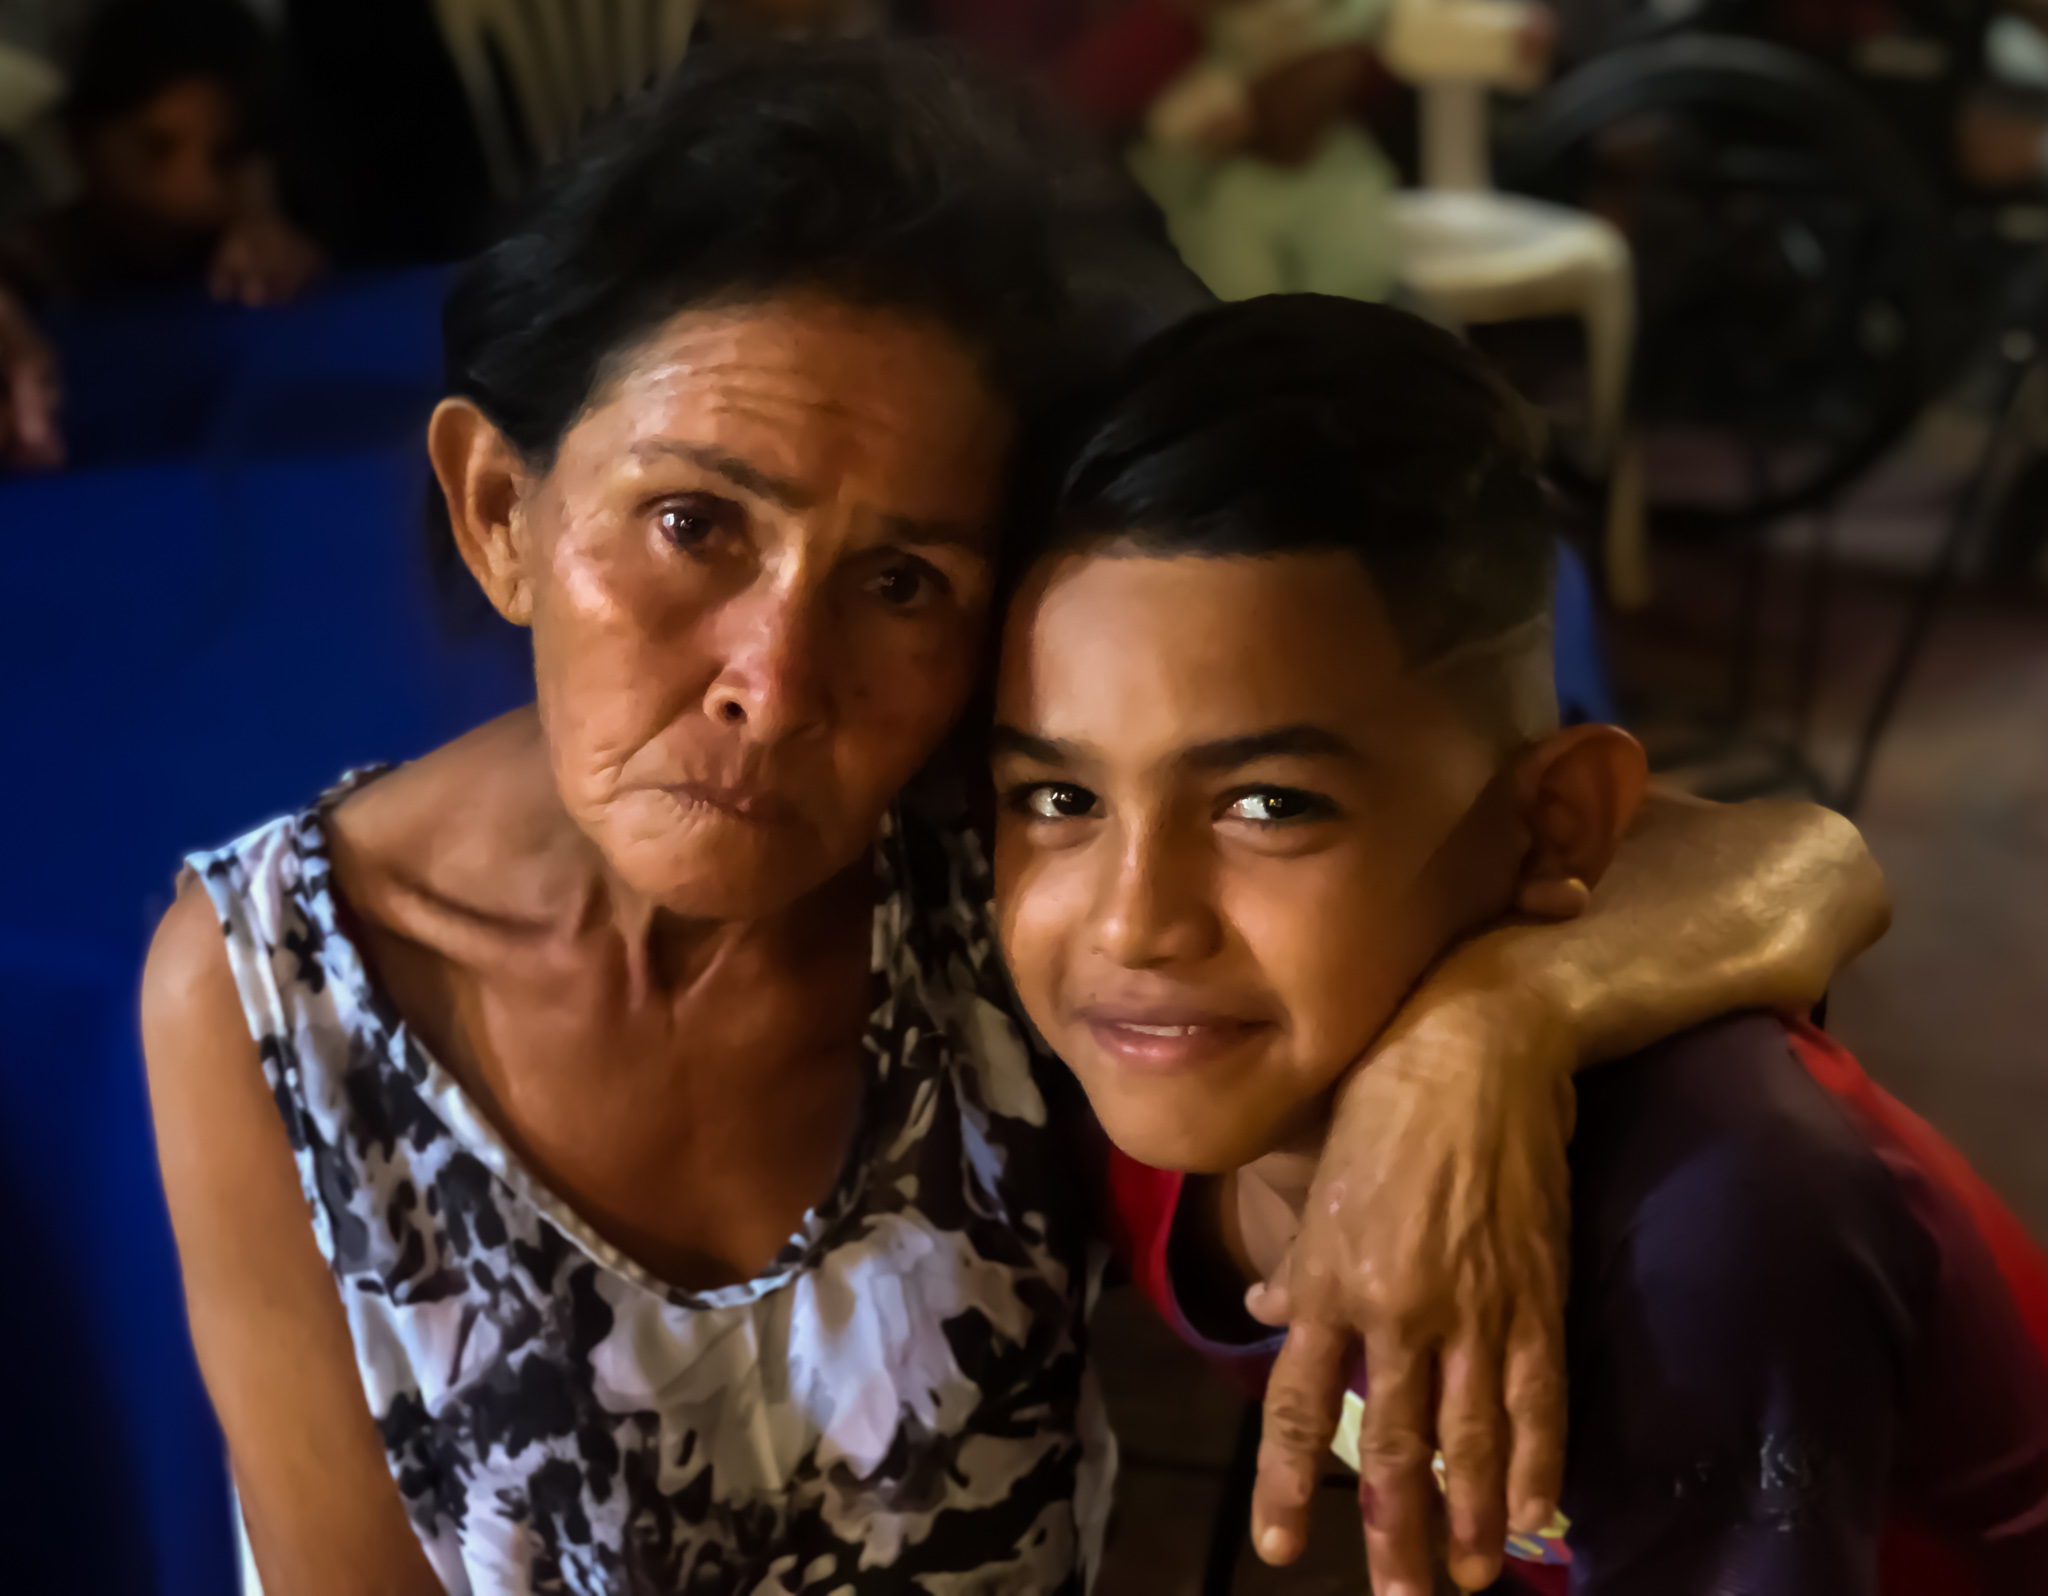 Maria Esther Soto and her son - he is sponsored by Project Abrazos